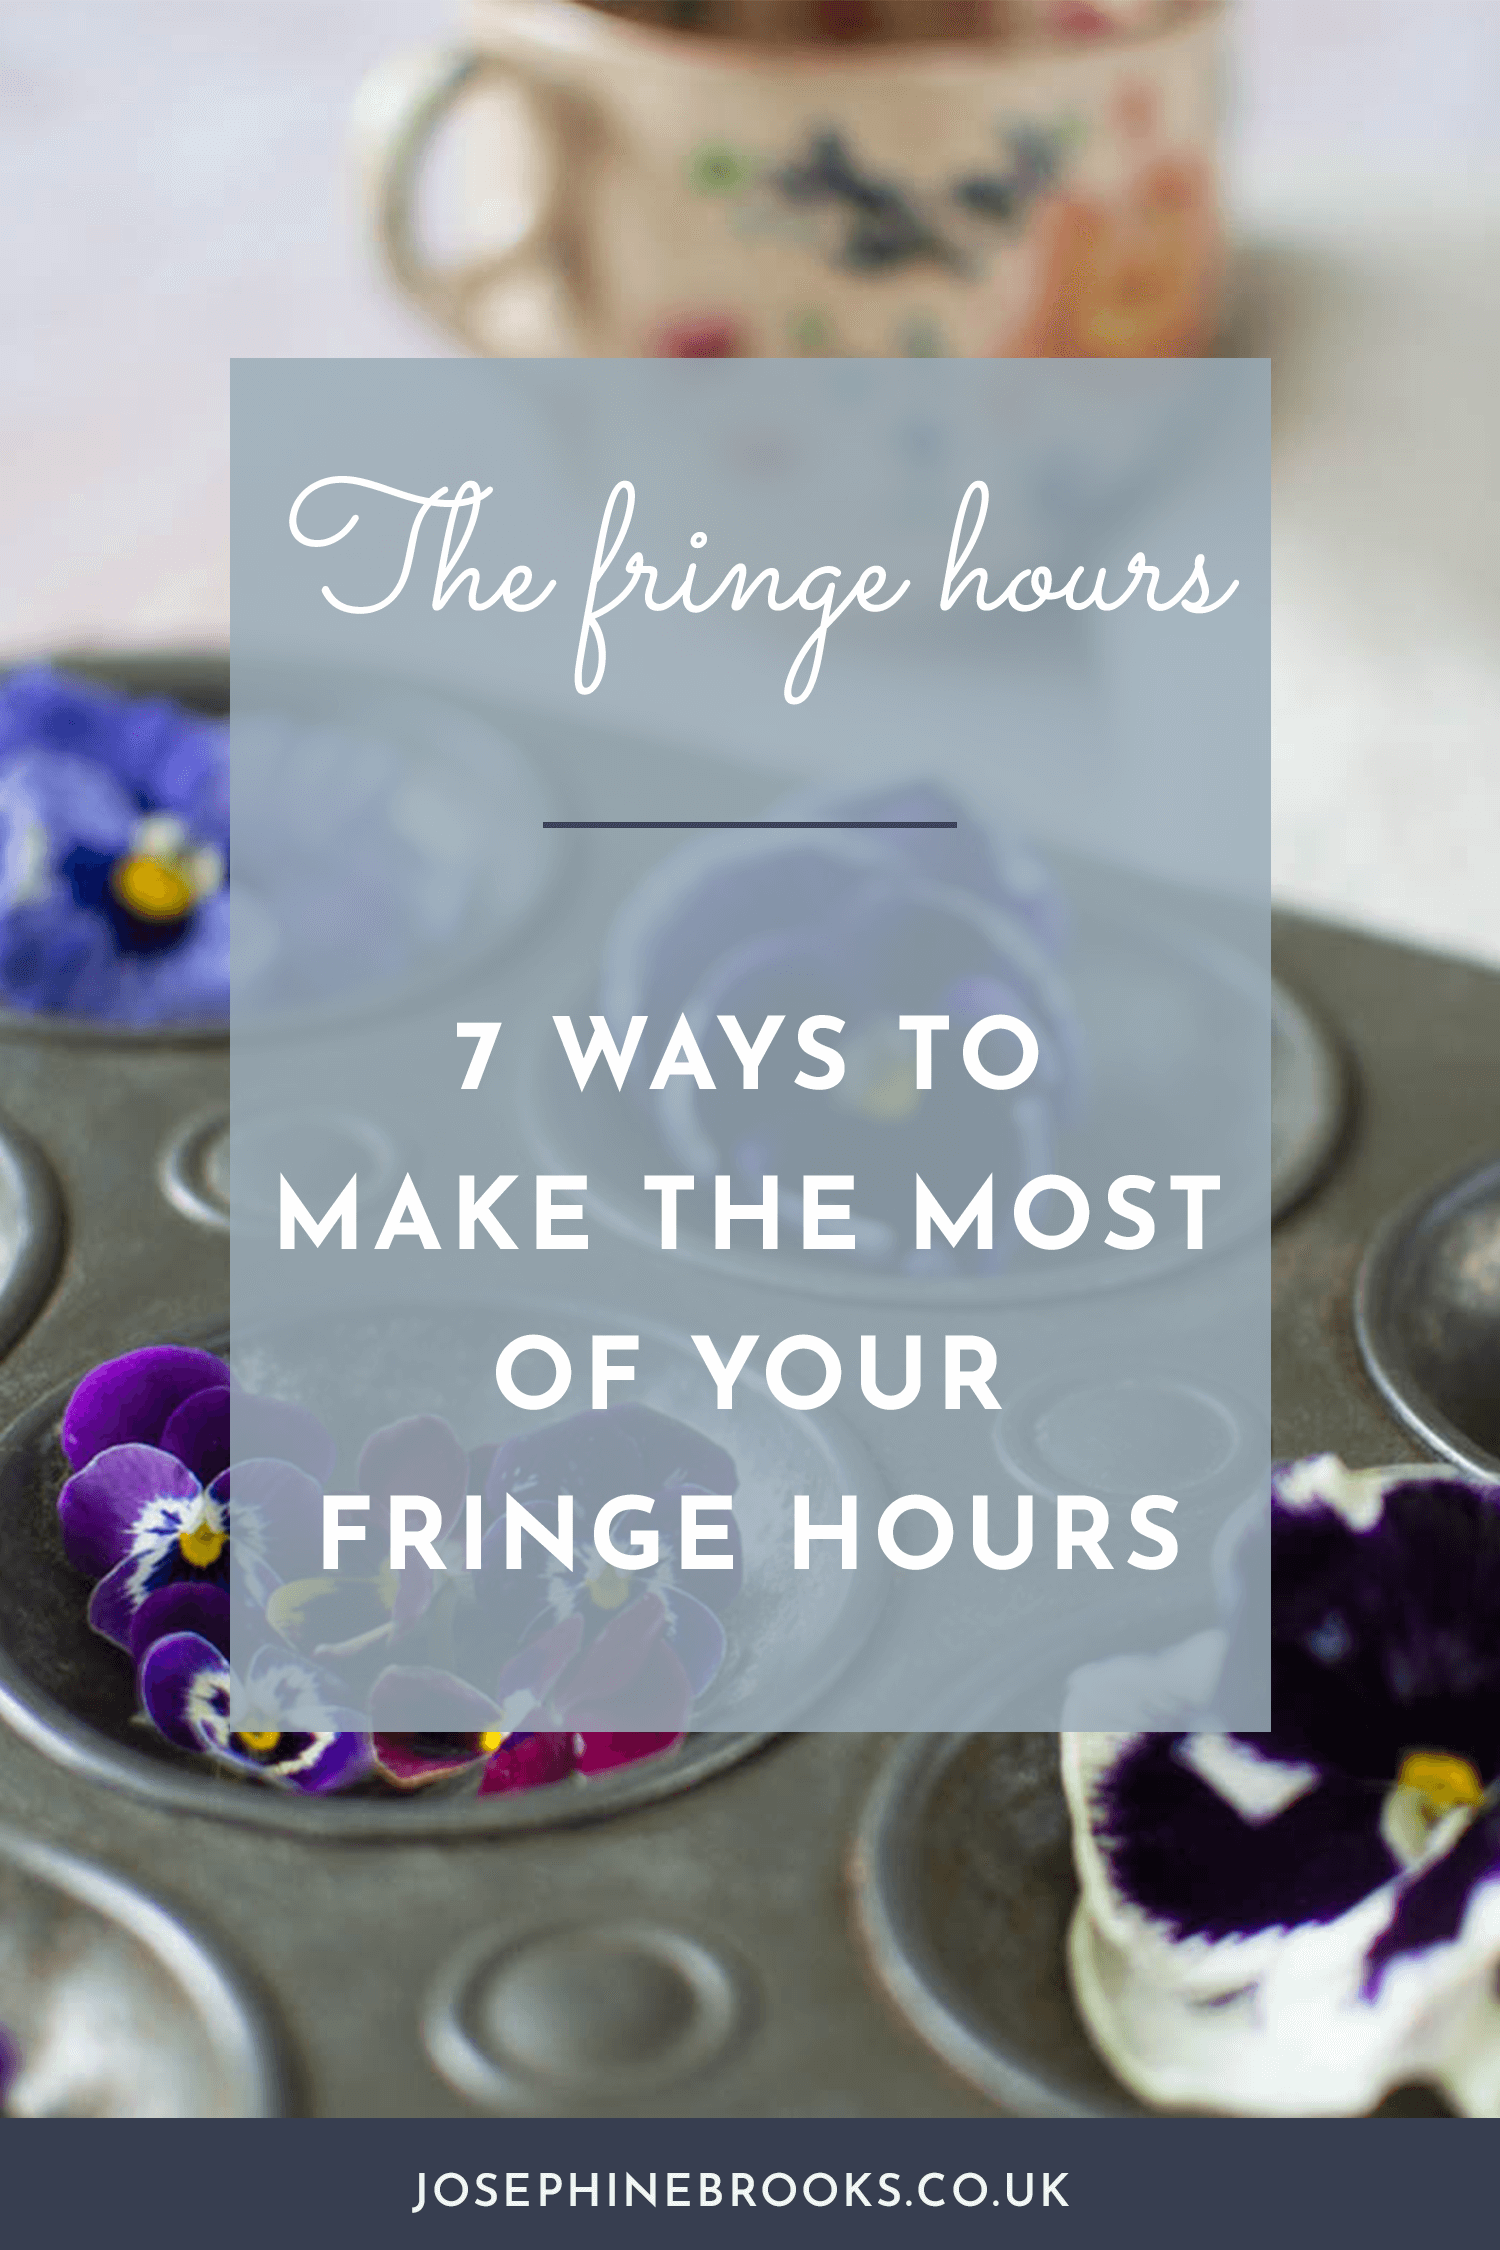 7 ways to make the most of your fringe hours, Post office queue productivity, 9 jobs you can get done in the post office queue, time management hacks for creative business, productivity tips for makers and designers, time management for creatives | Josephine Brooks